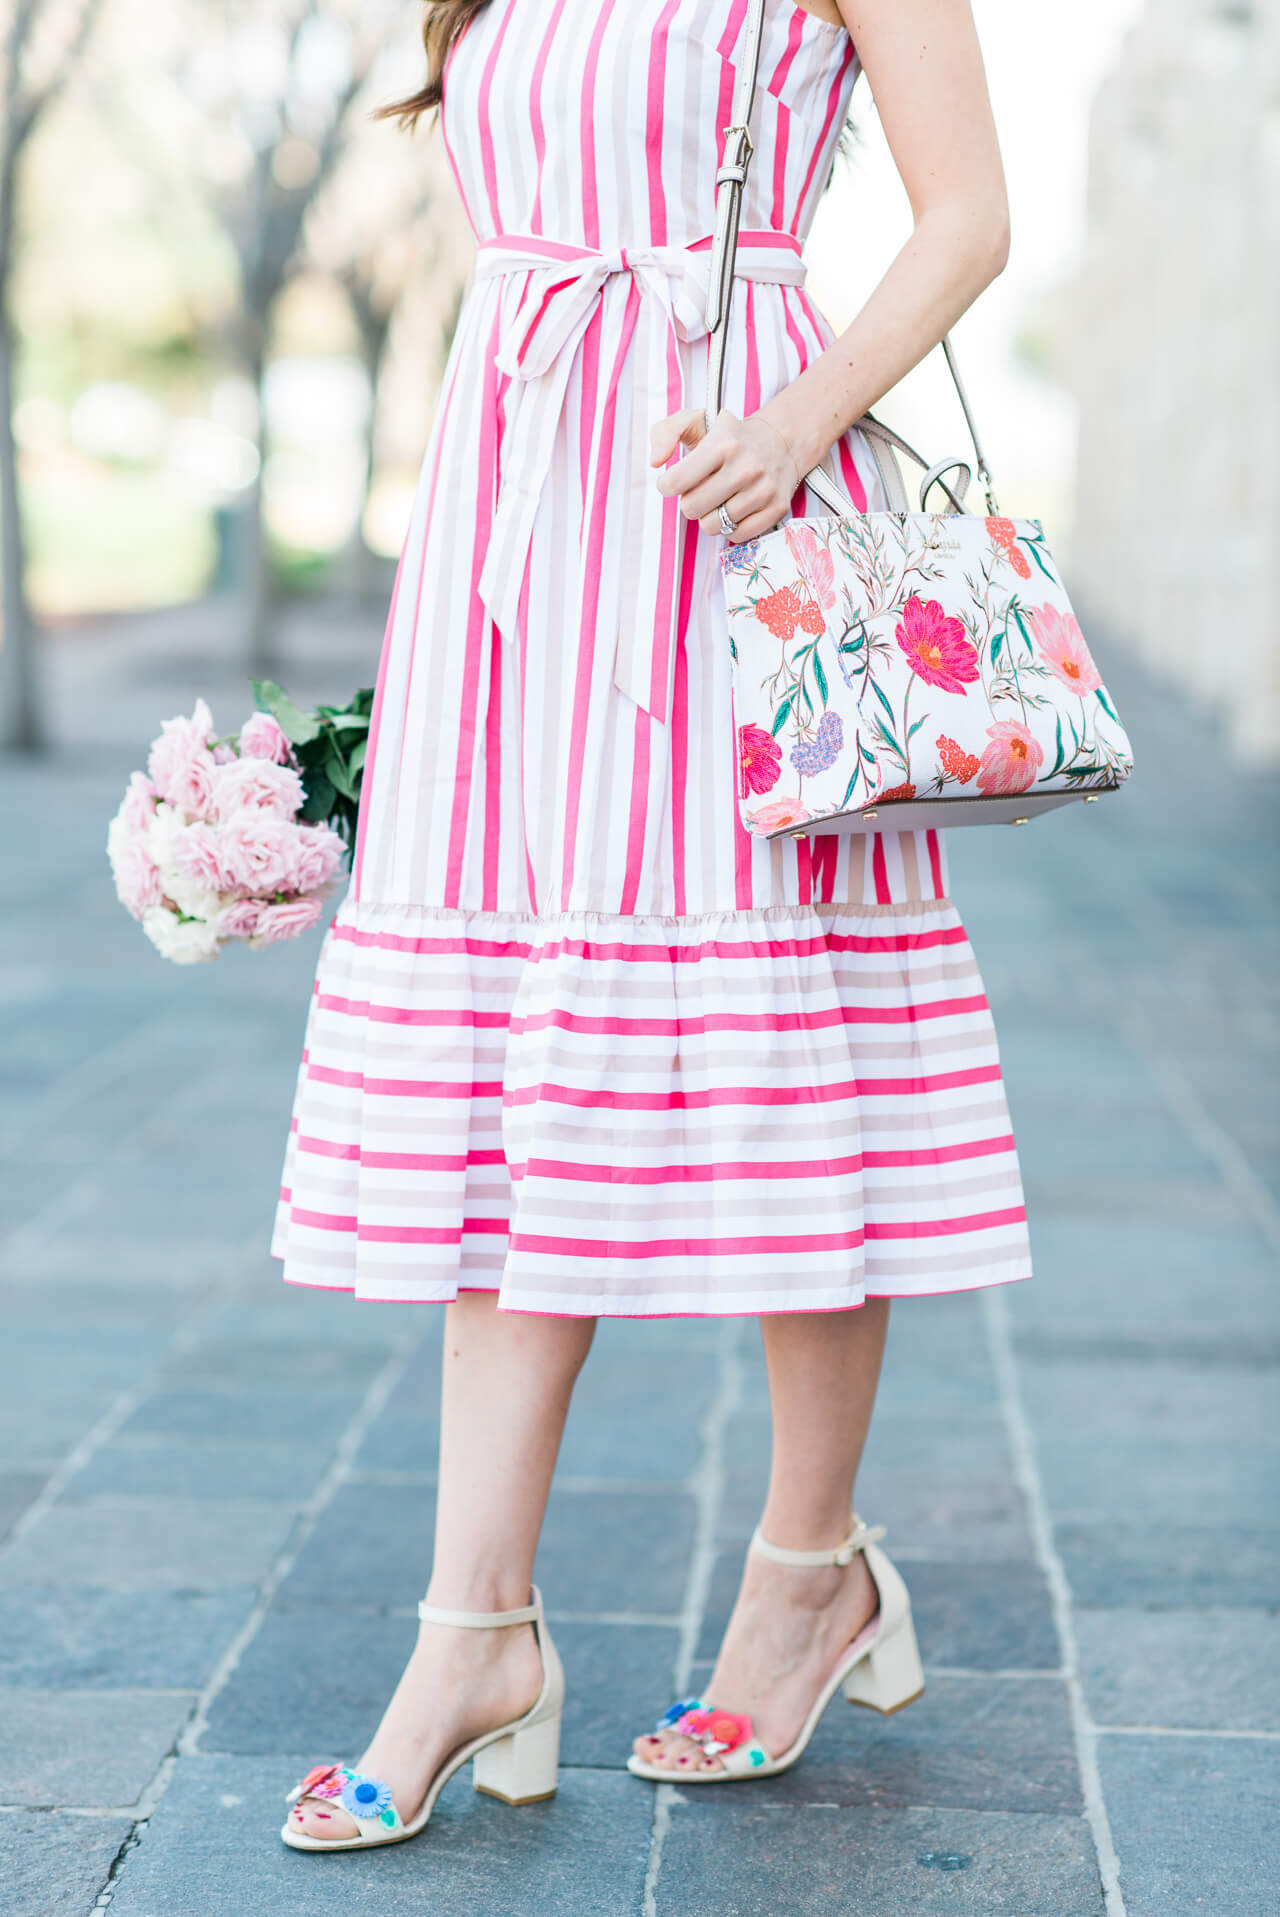 print mixing with florals and stripes - M Loves M @marmar